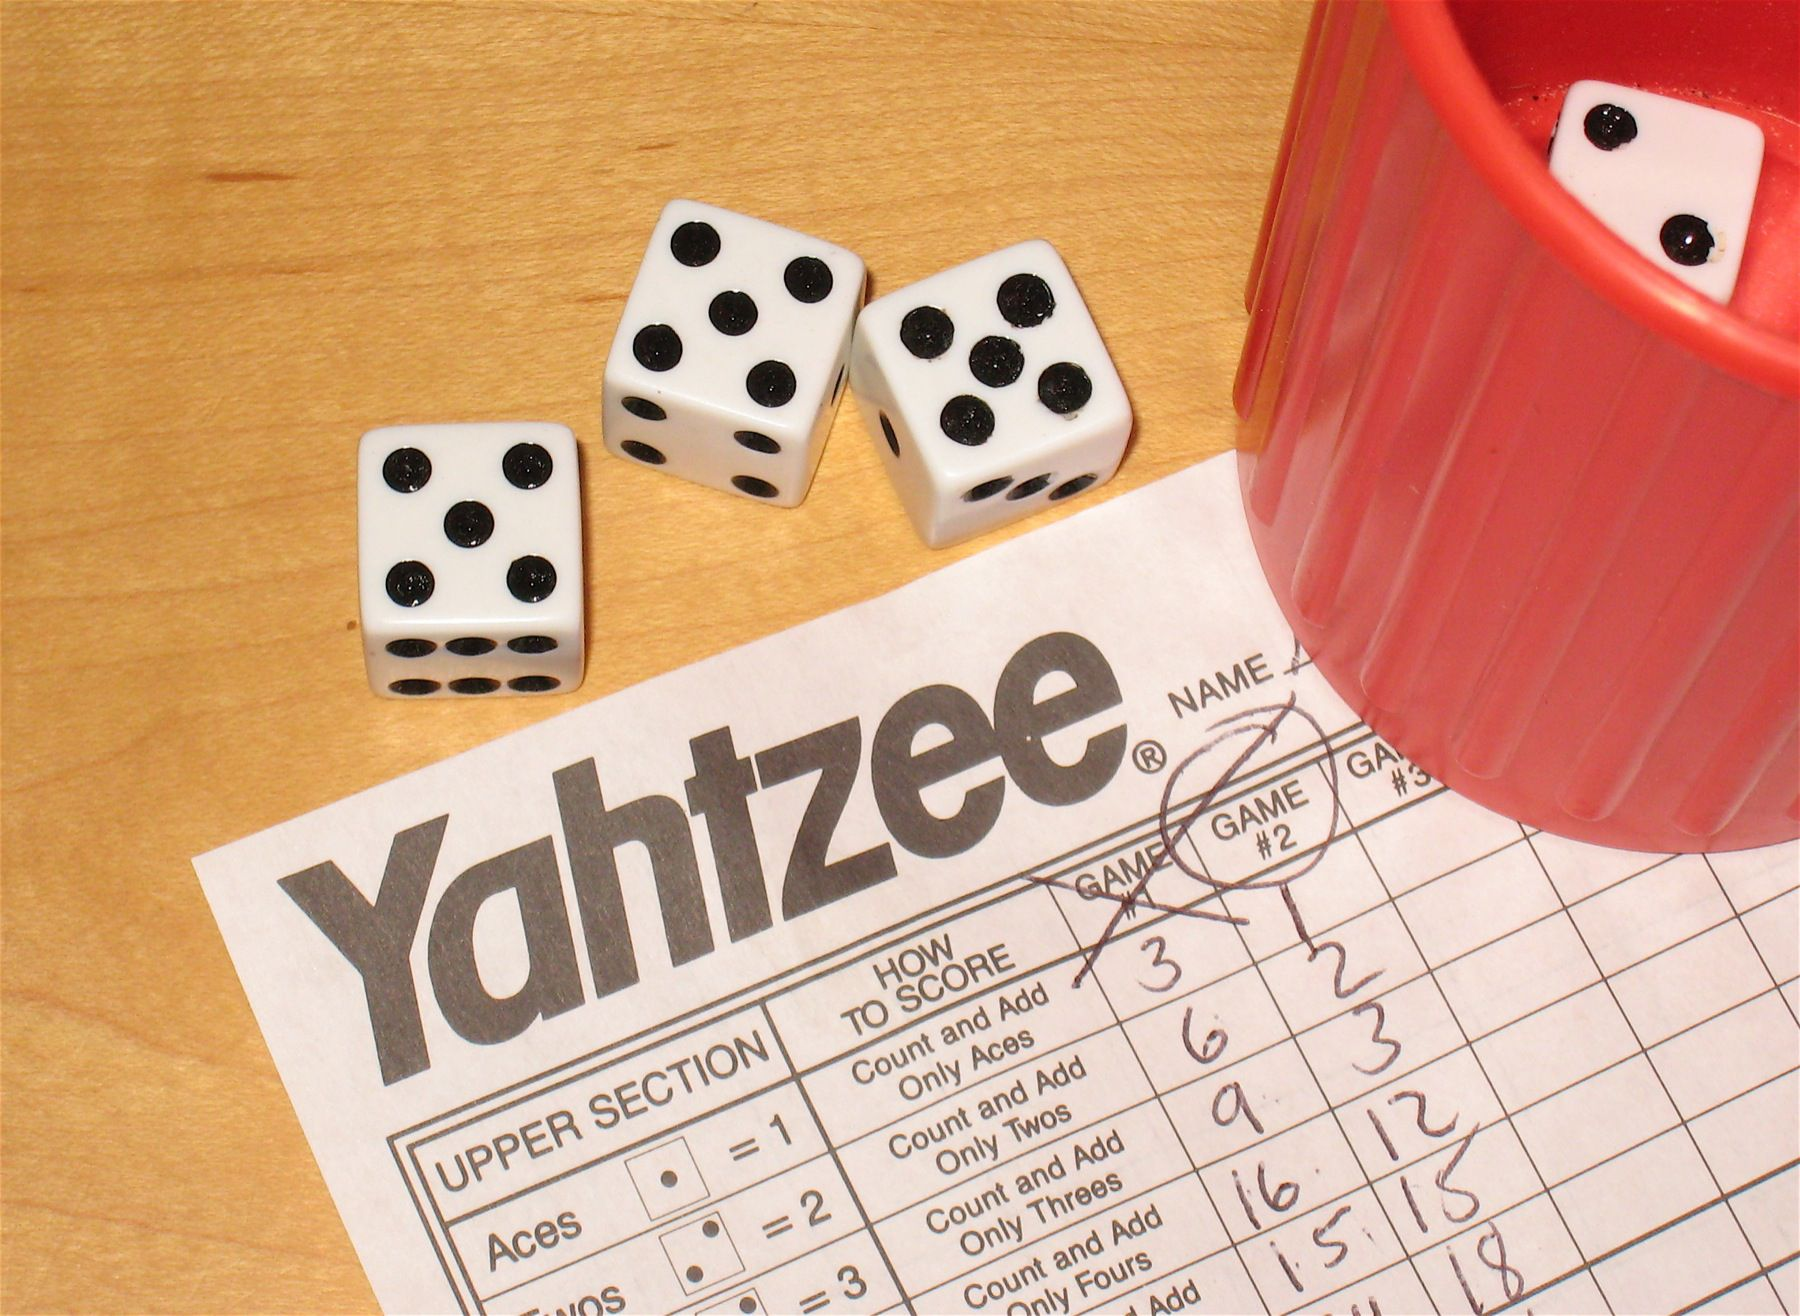 The Probability Of Rolling A Full House In Yahtzee